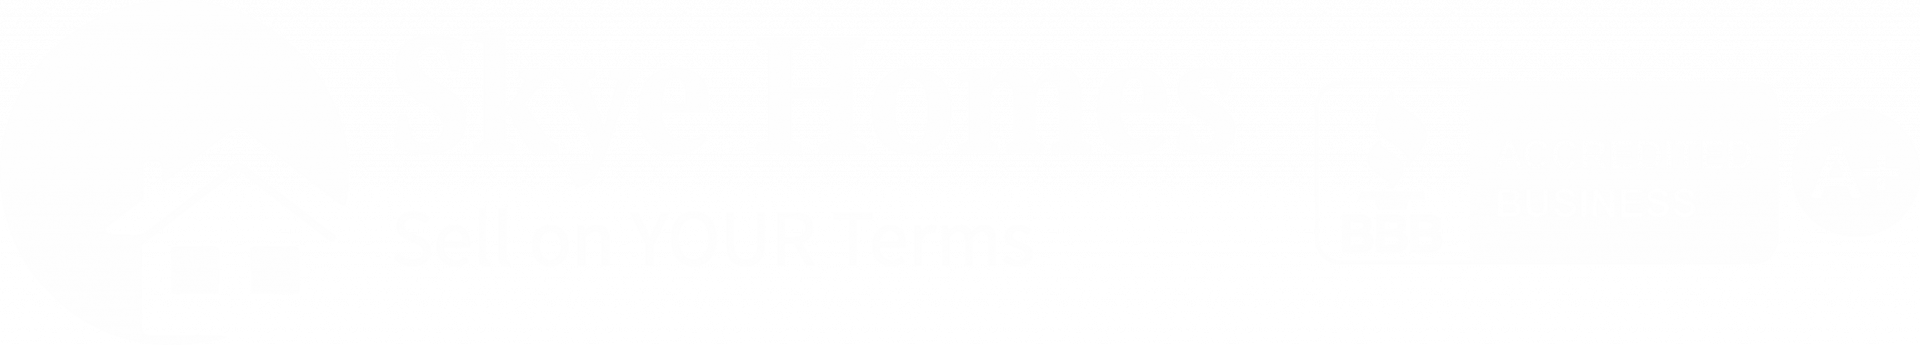 Skye Homes logo